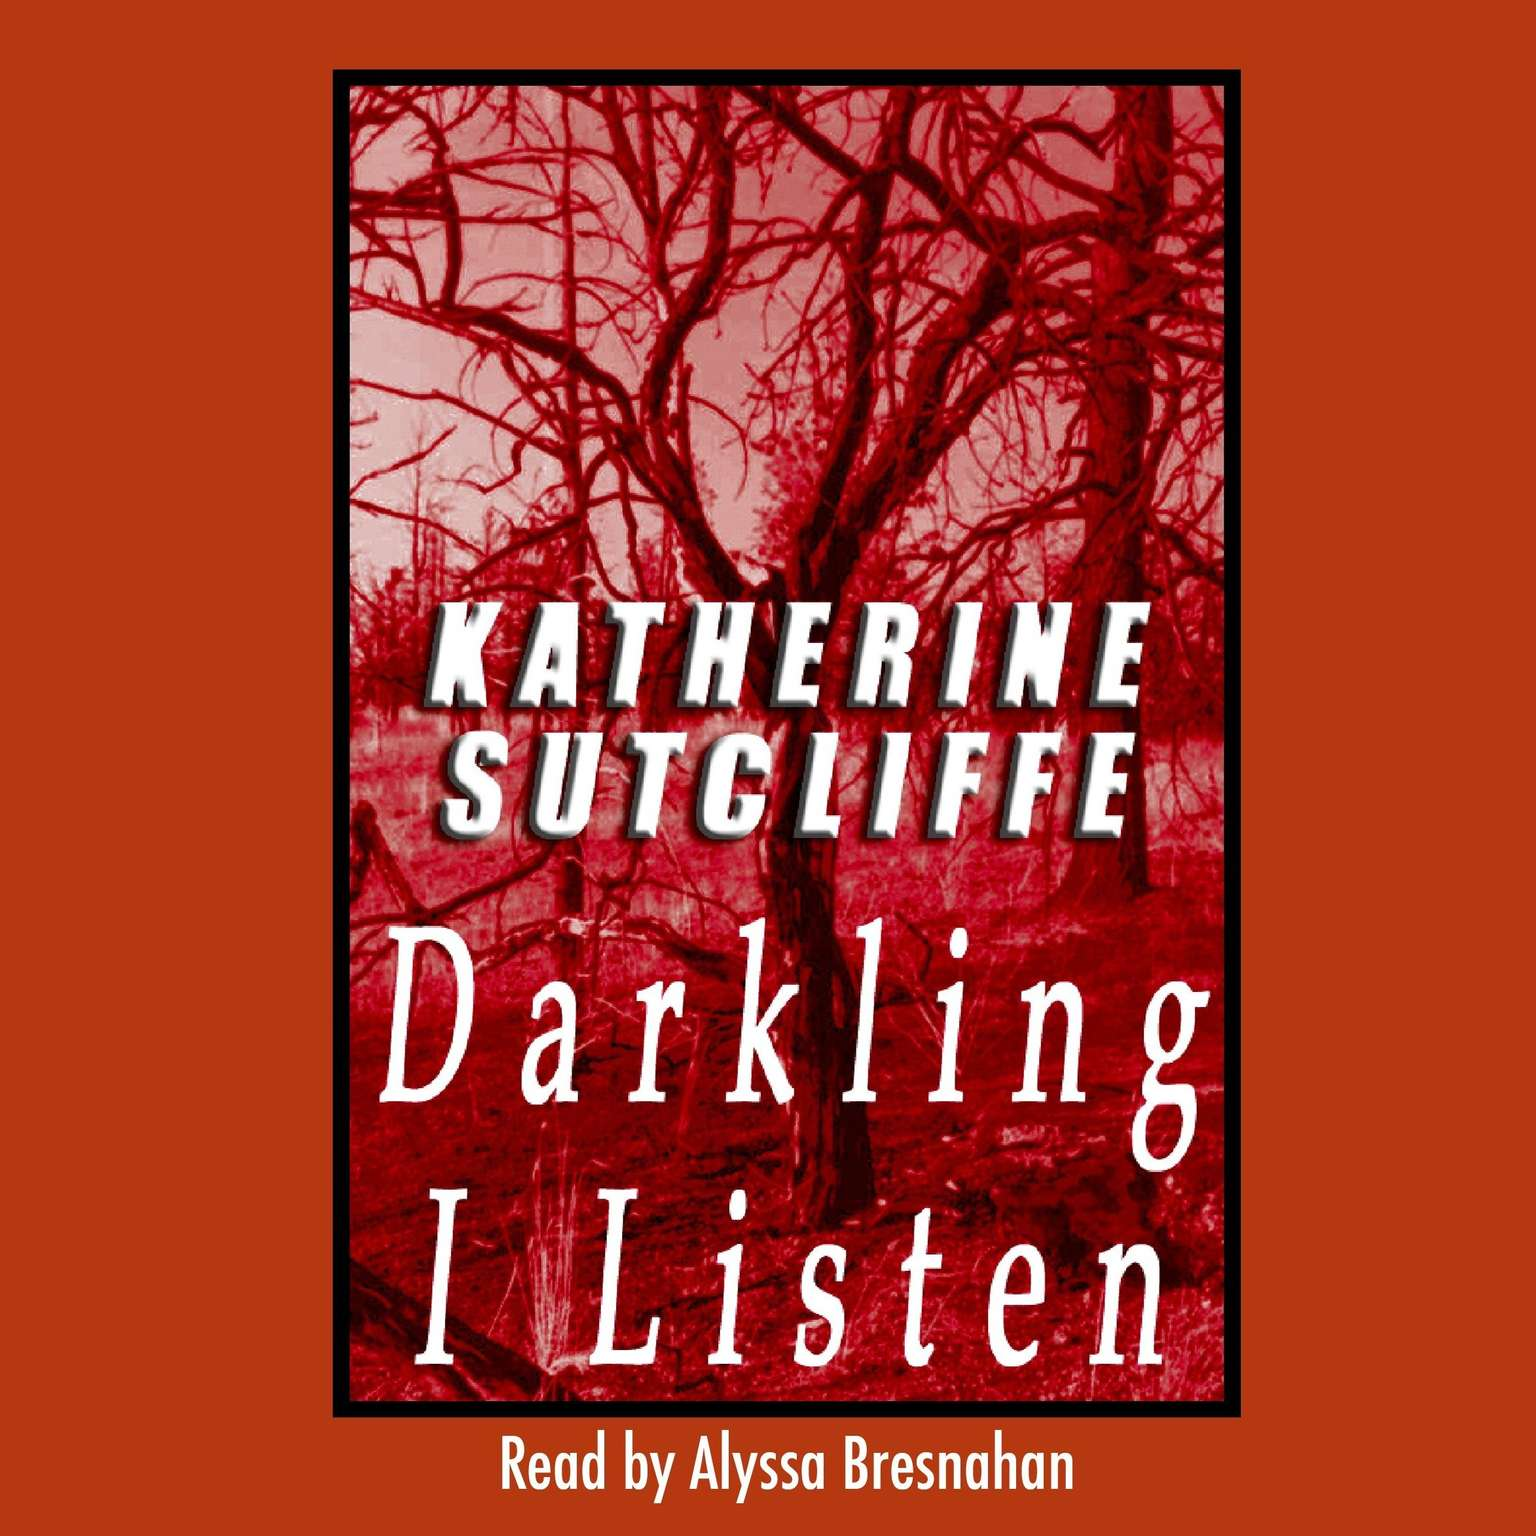 Printable Darkling I Listen Audiobook Cover Art